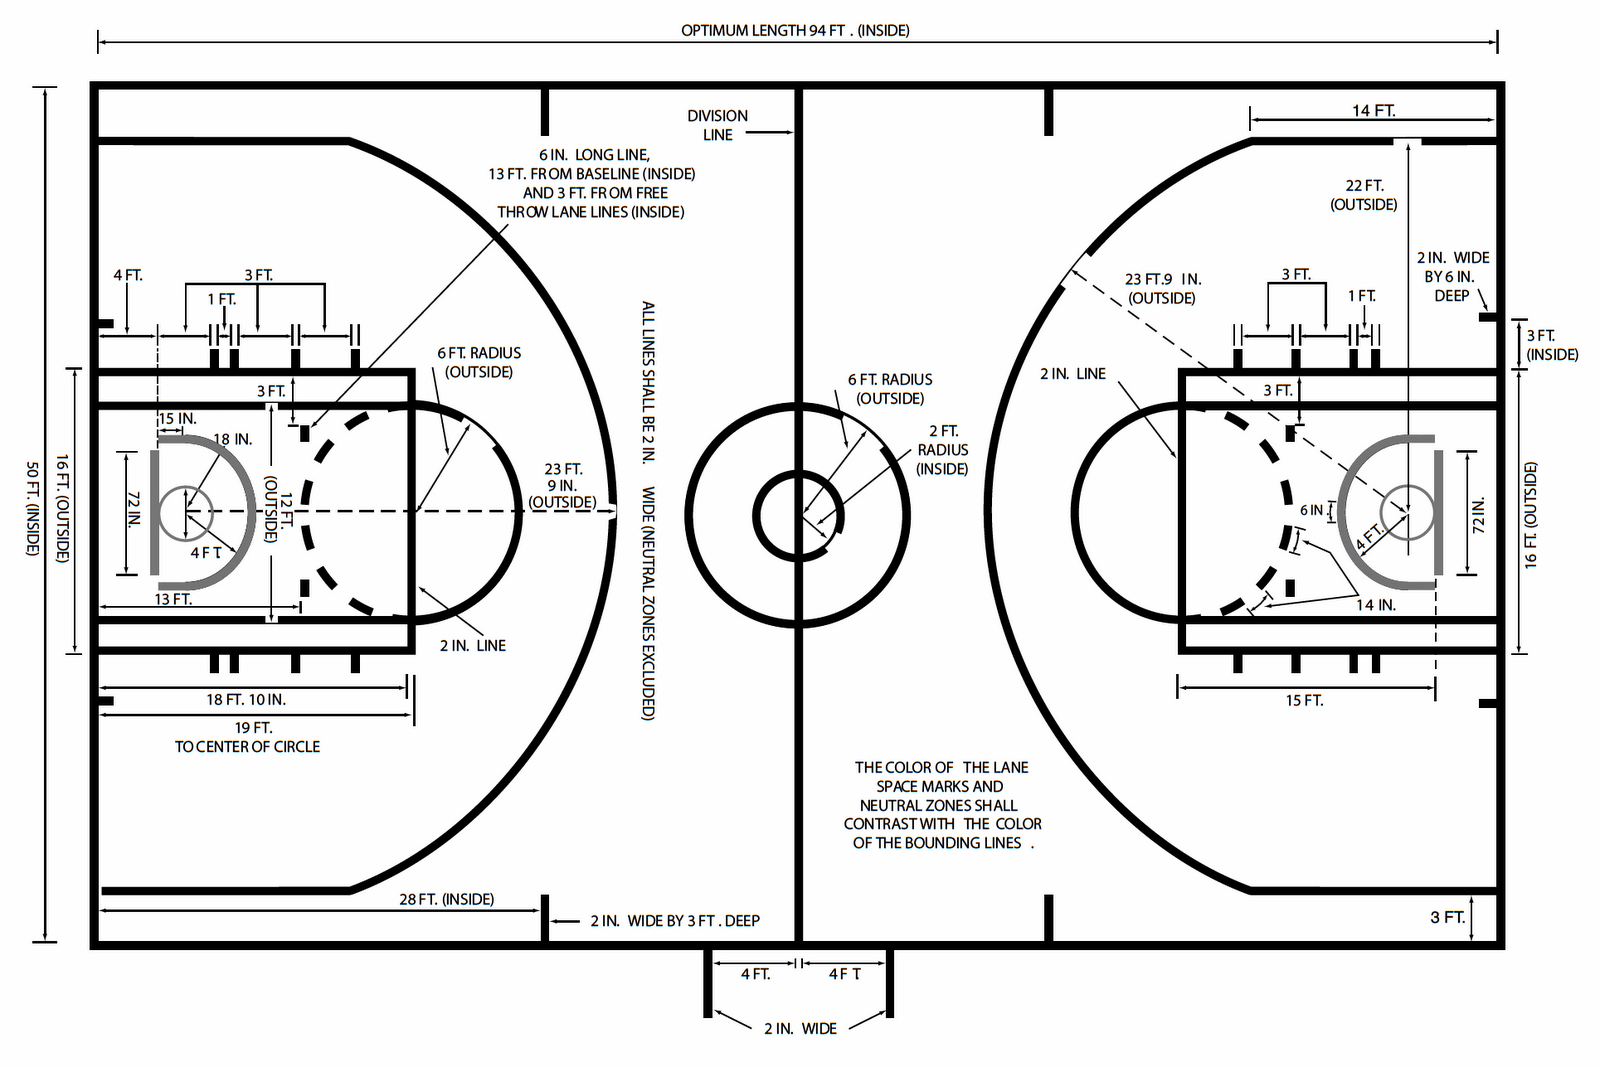 Basketball Court Dimensions Measurements Basketball Court Size Basketball Court Layout Basketball Court Measurements